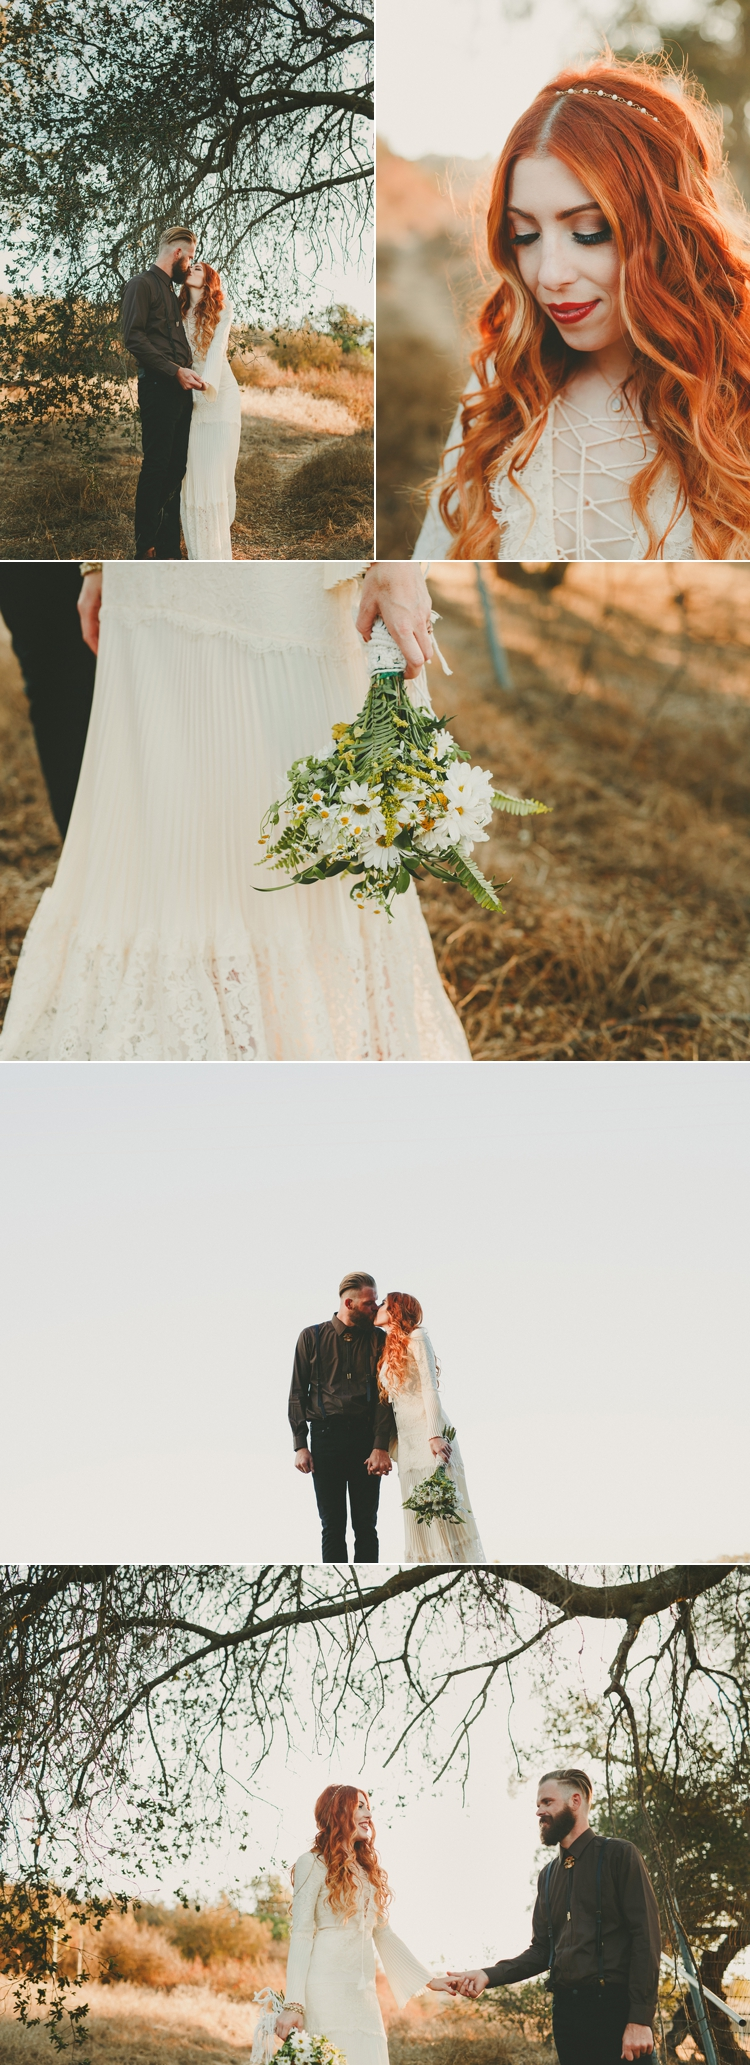 woodstock-inspired-wedding-photos-23